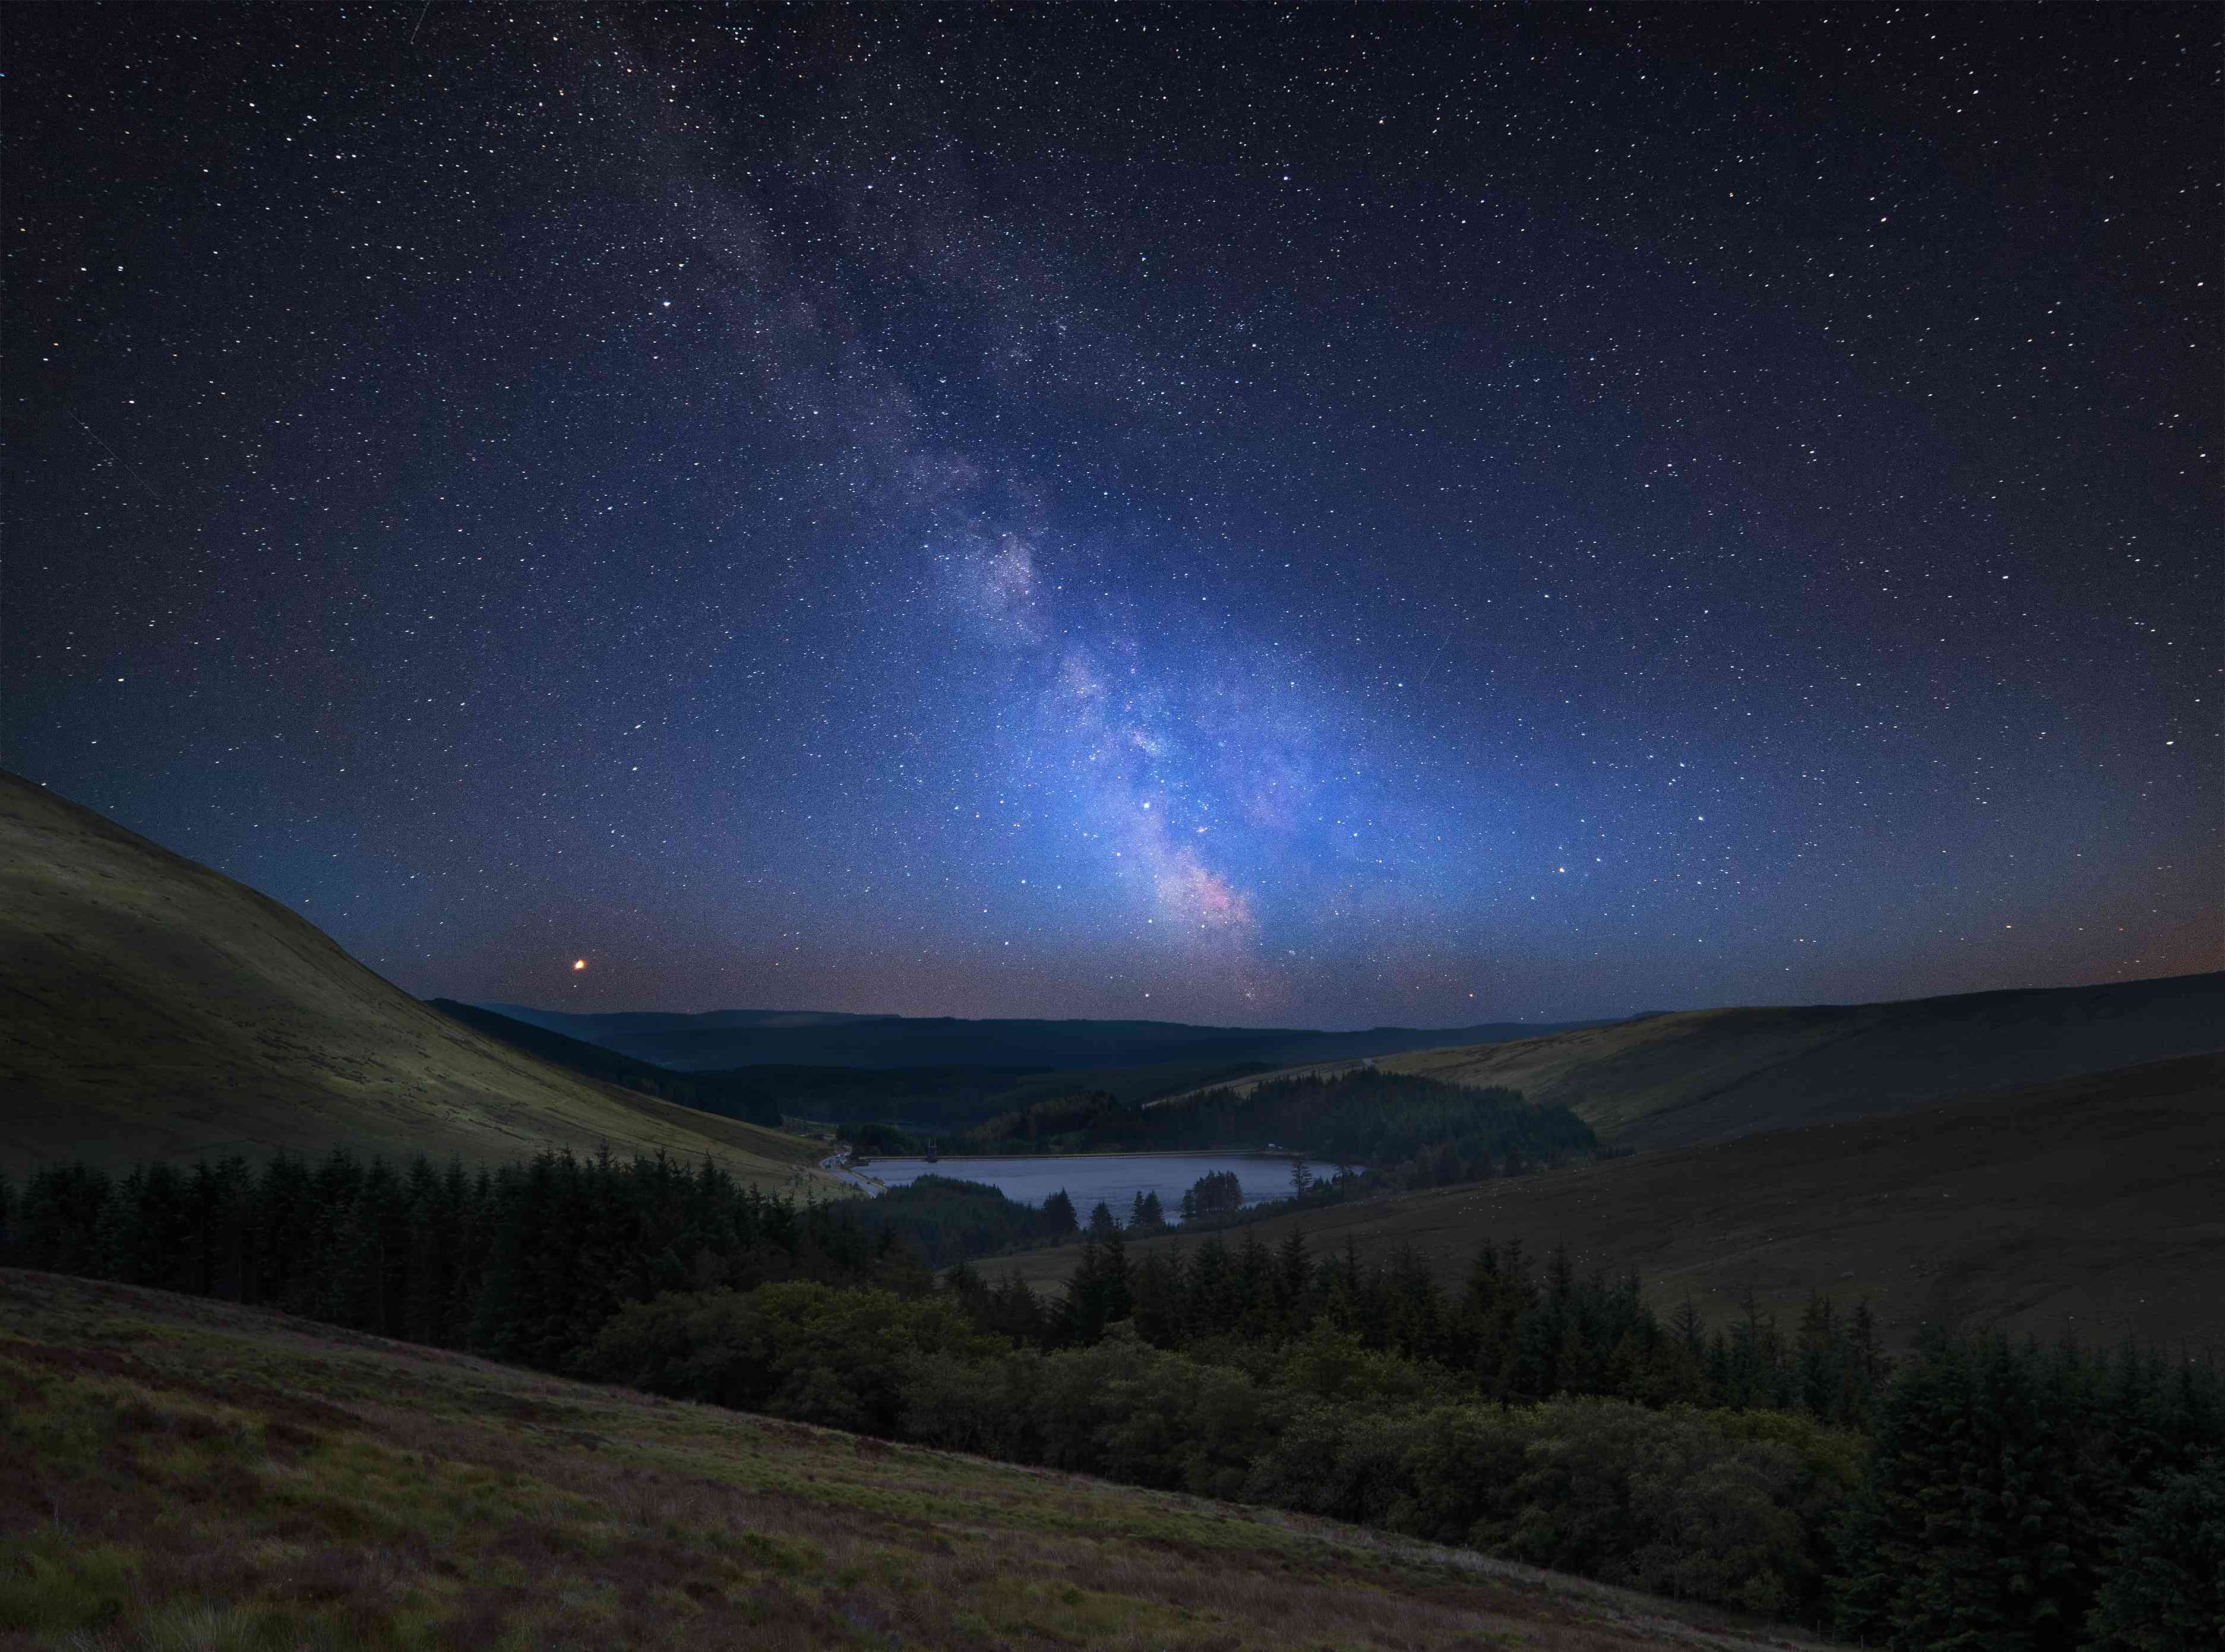 Milky Way over lush valley and mountains in the distance